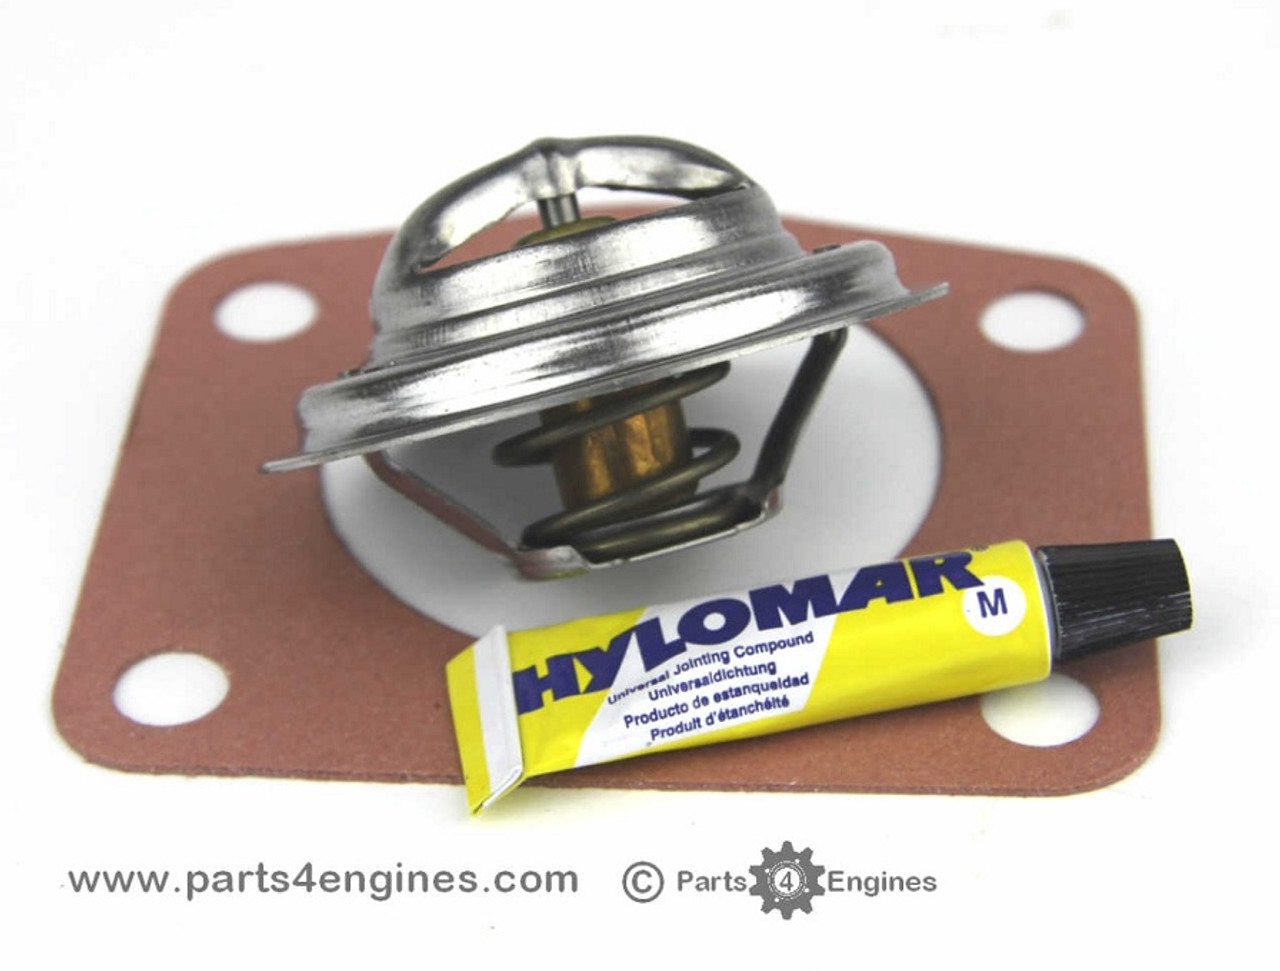 Perkins M90 Thermostat early version - parts4engines.com